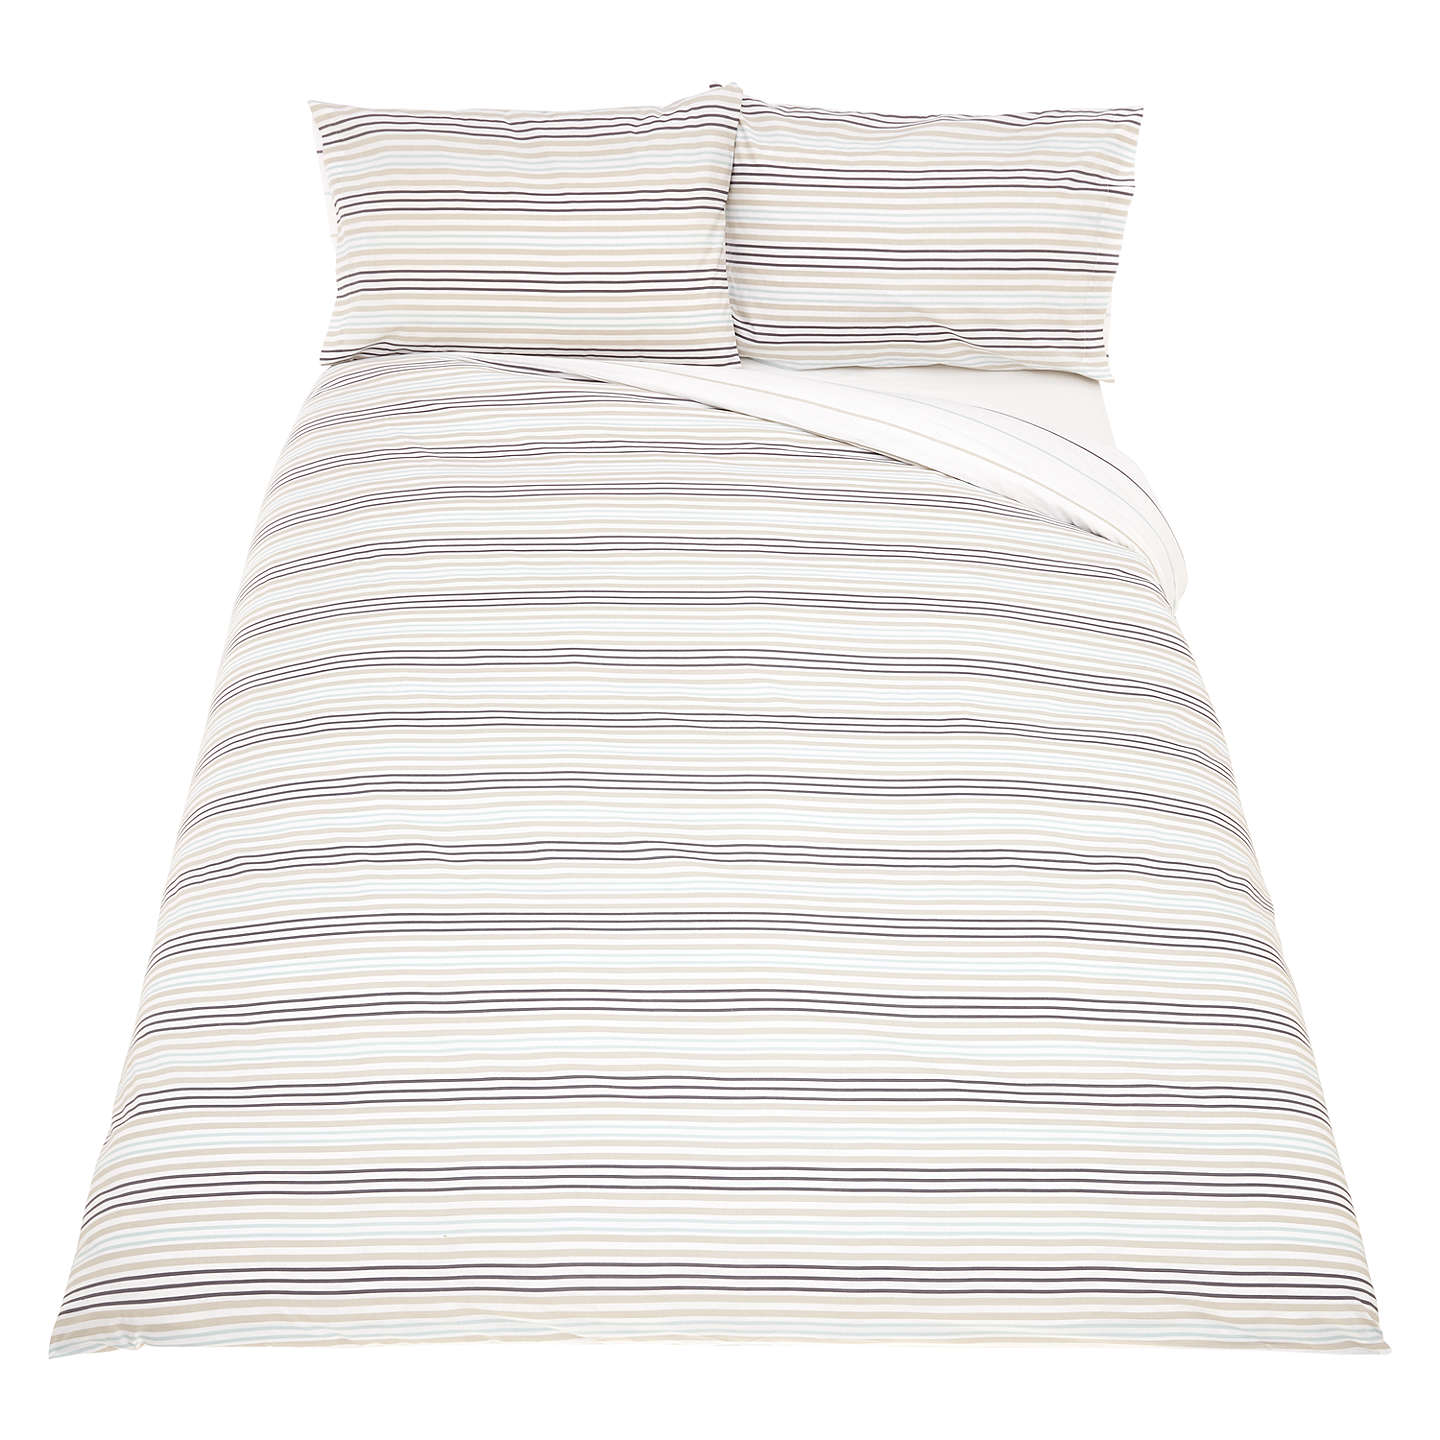 BuyJohn Lewis The Basics Polycotton Stripes Duvet Cover and Pillowcase Set, Single, Duck Egg/Steel Online at johnlewis.com